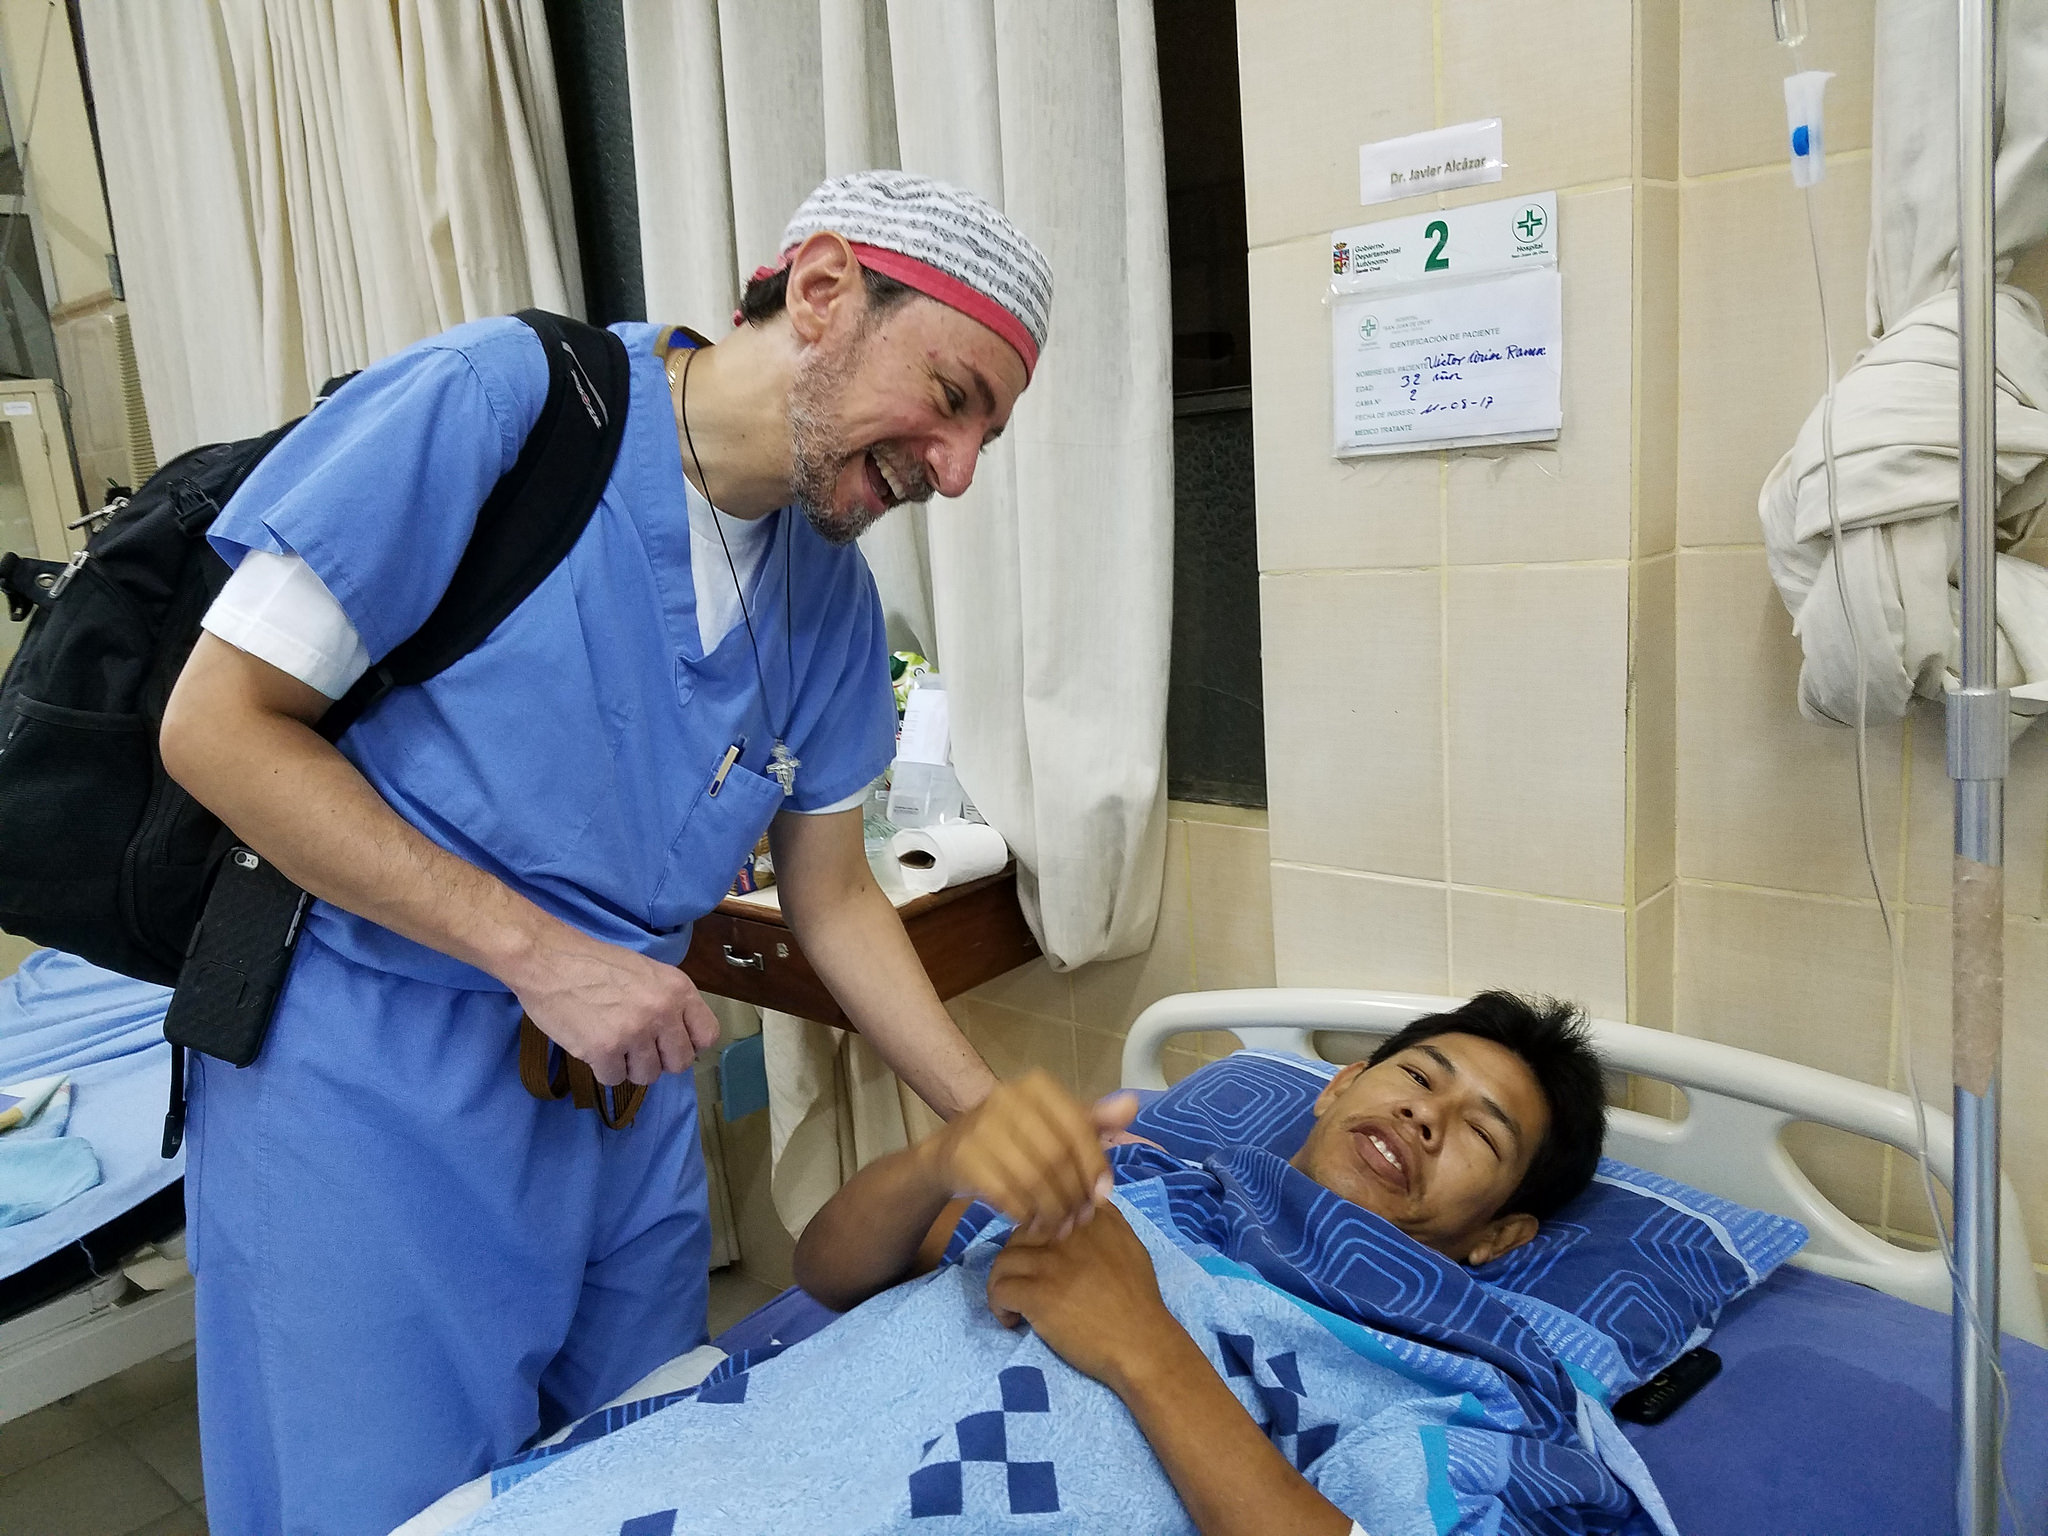 Above photo: Dr. Magued Khouzam is delighted to find Victor in good spirits the morning after surgery.